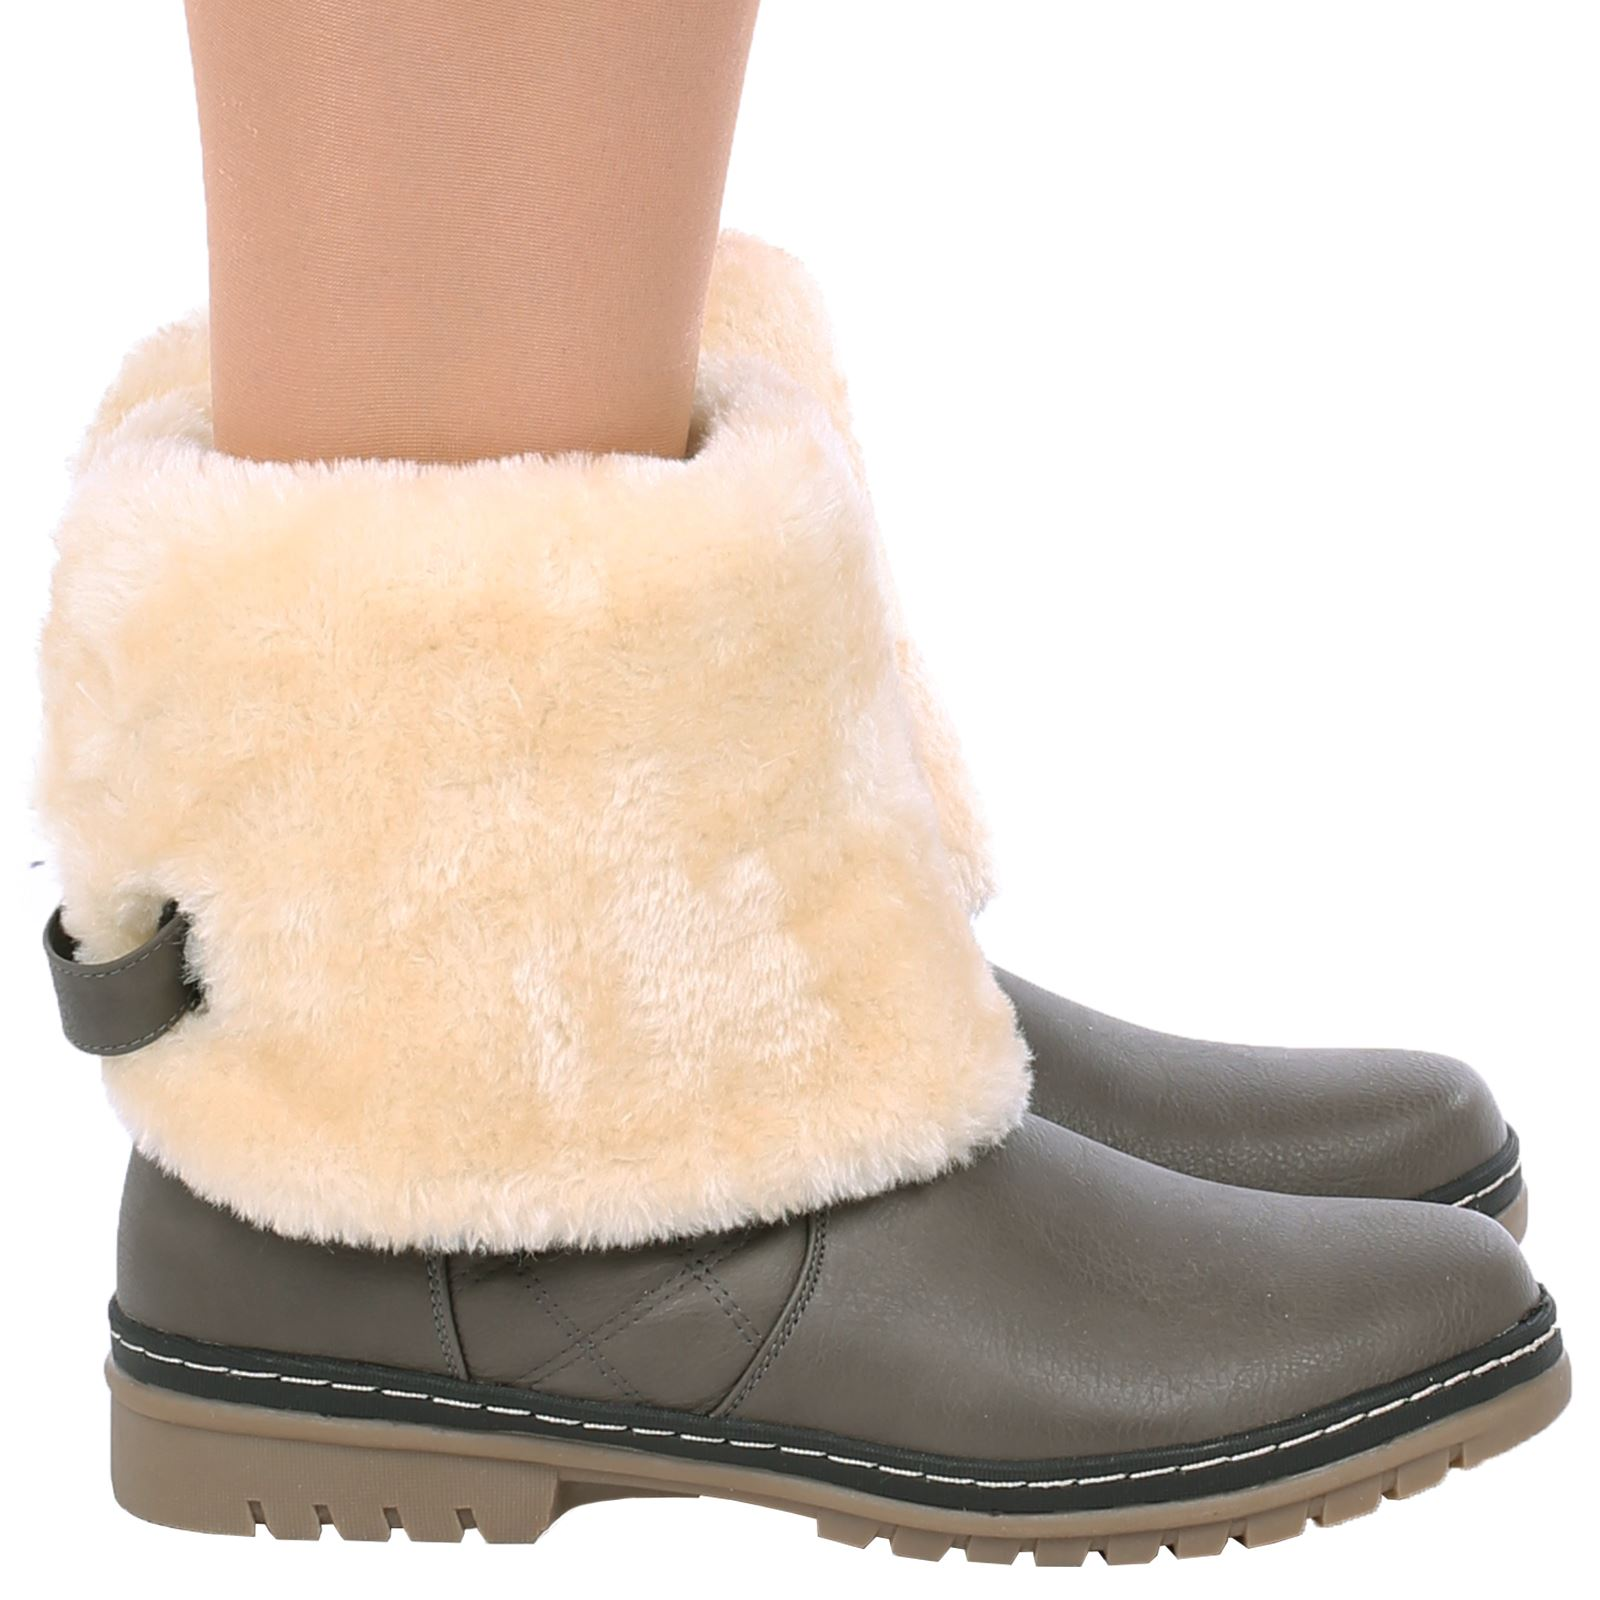 8f442d8b2dcb3 D6Z Womens Ladies Quilted Faux Fur Lined Thick Sole Mid Calf Boots ...